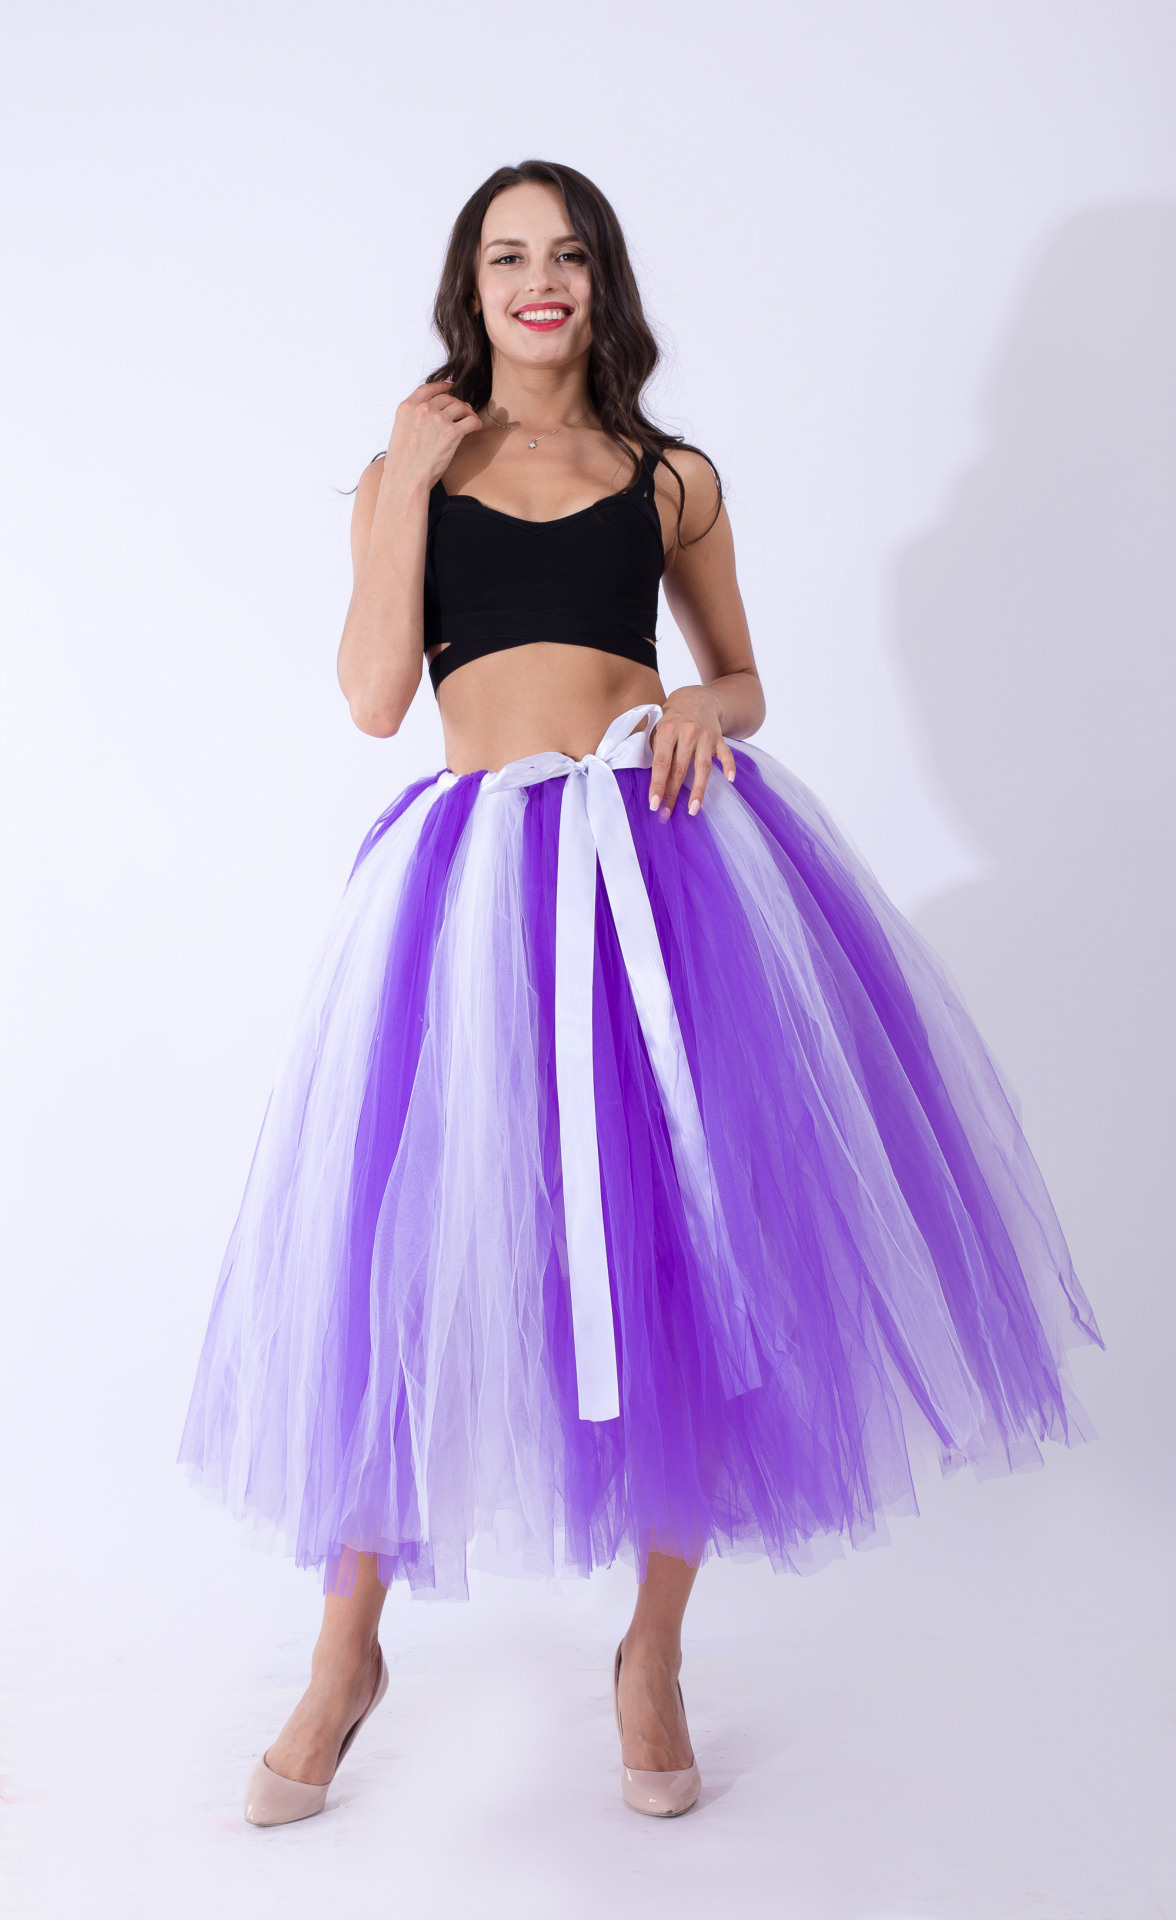 Women Puffy Tutu Skirts Long Tea Length Tulle Skirt Wedding Bridesmaid Lolita Under skirt purple+white